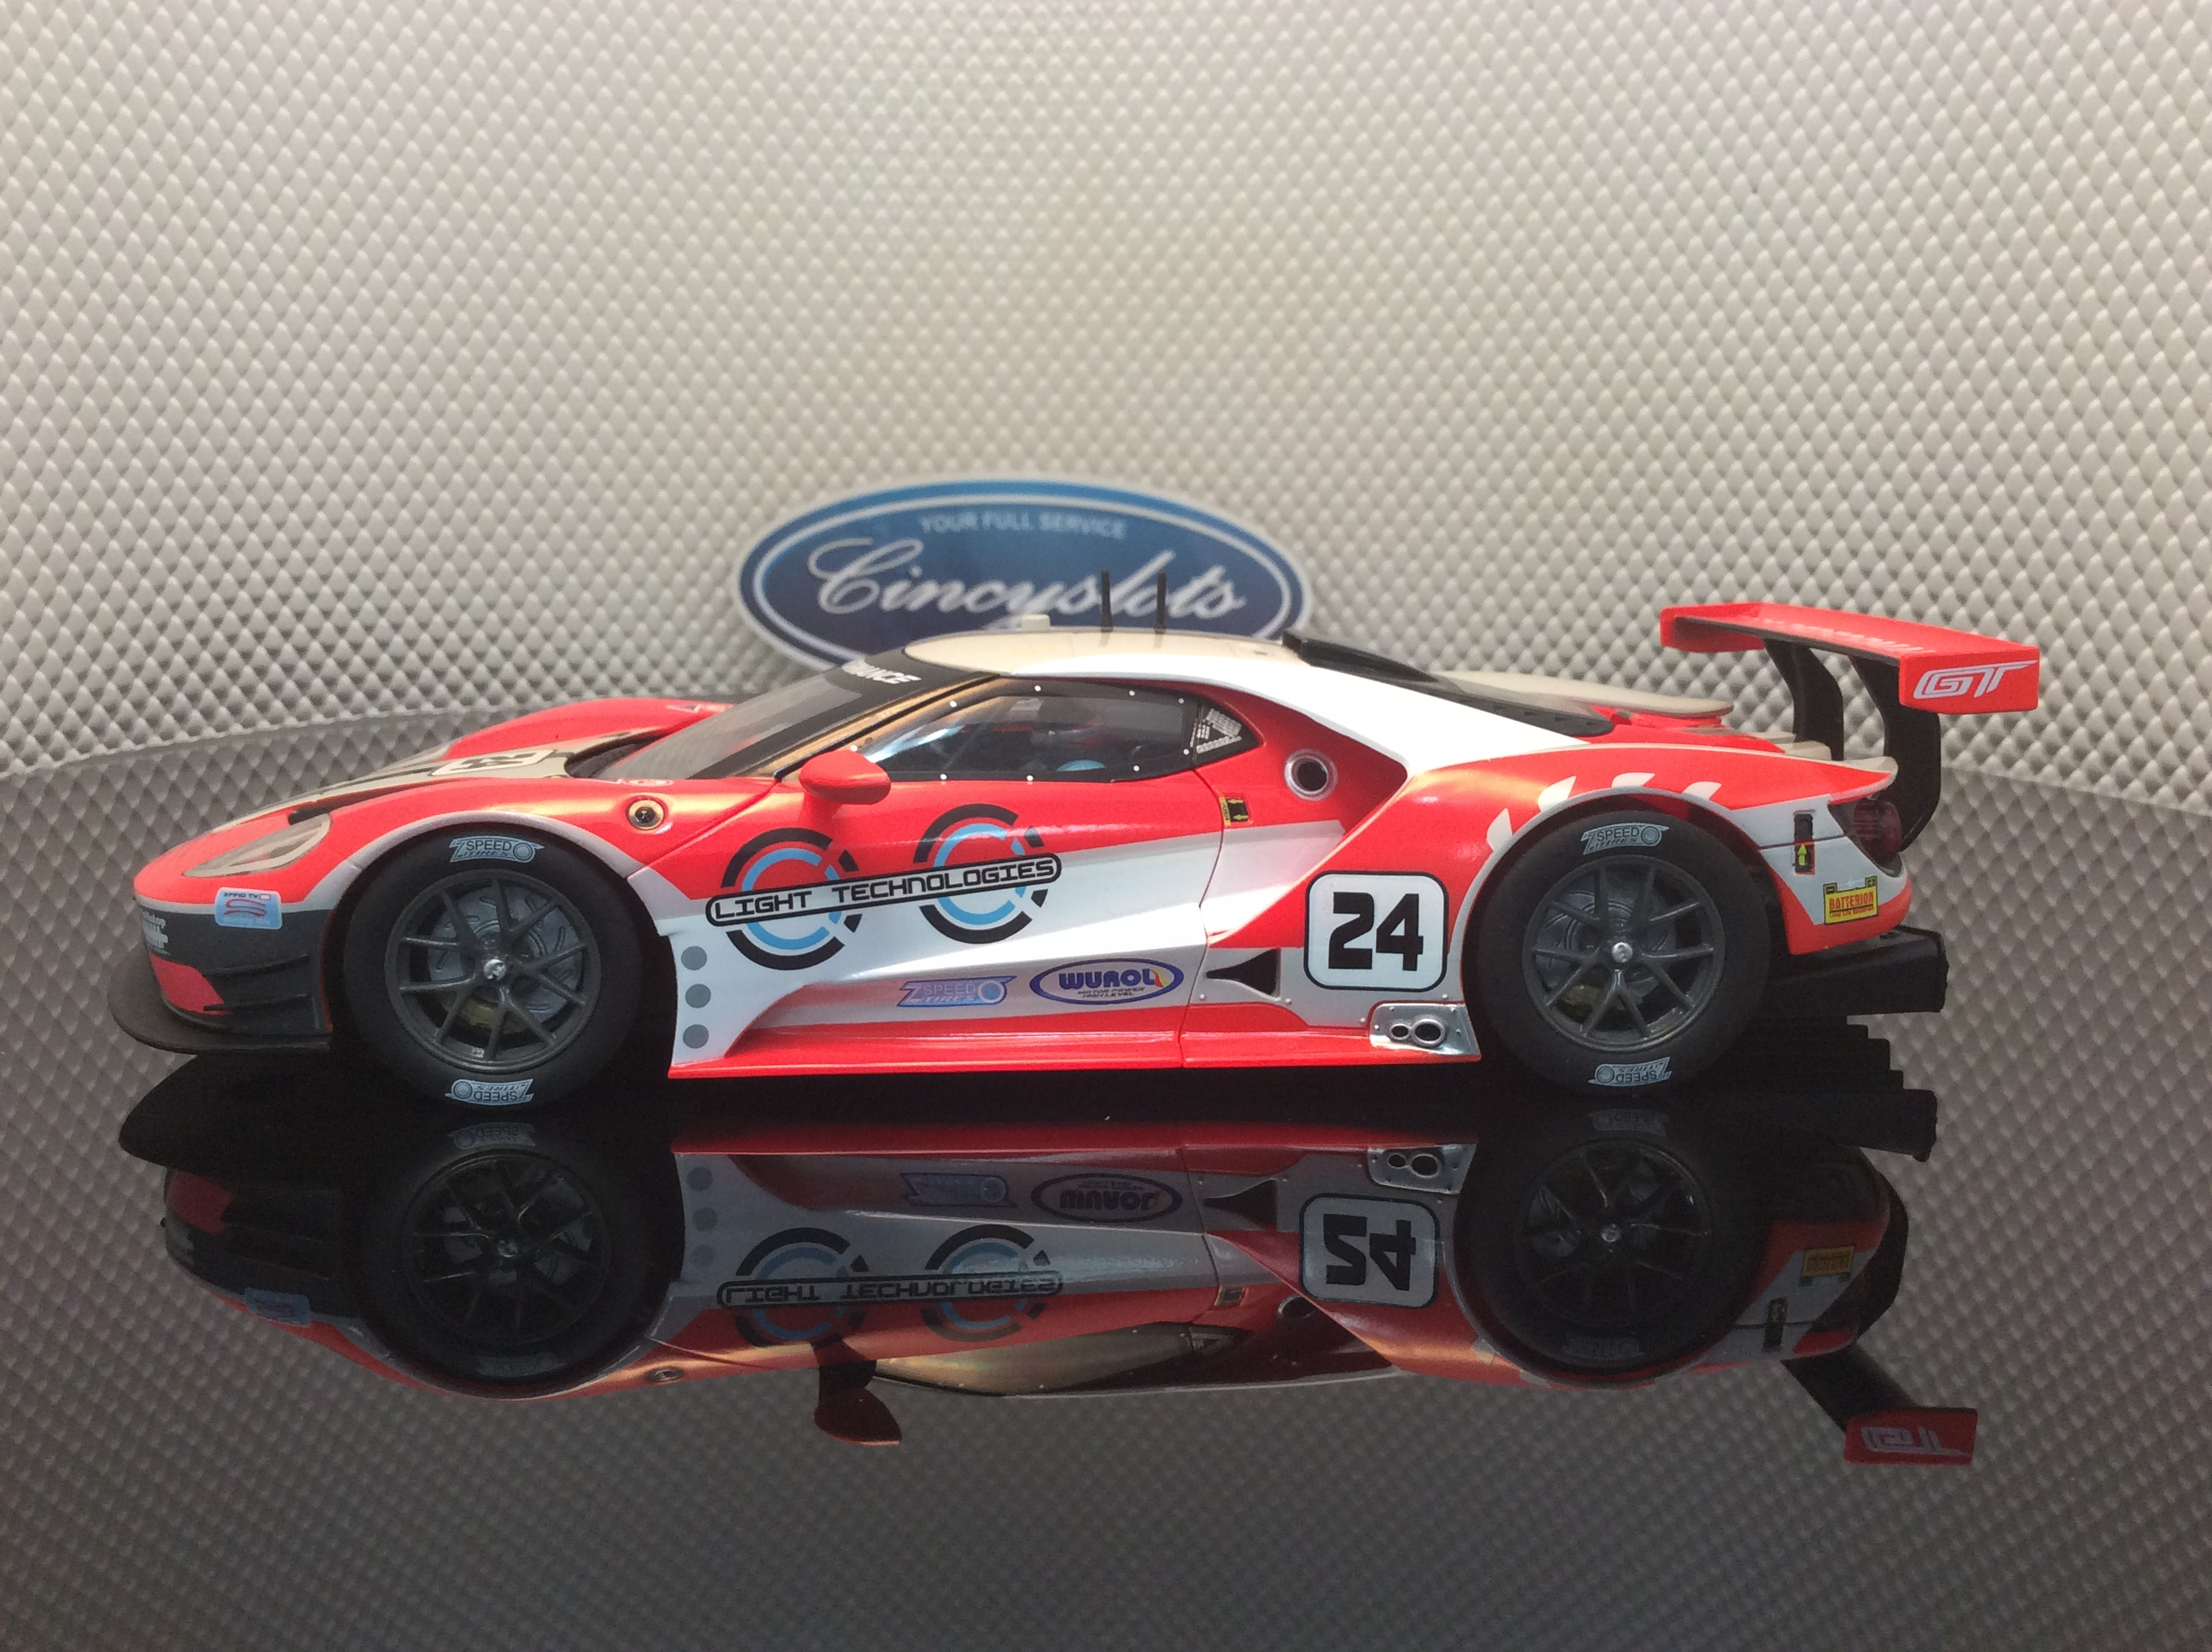 Carrera D124 23841 Ford GT #24 Slot Car on monaco ford gt, ferrari ford gt, scalextric ford gt, electric ford gt, classic ford gt, go kart ford gt, lego ford gt, airfix ford gt, lotus ford gt, police ford gt,